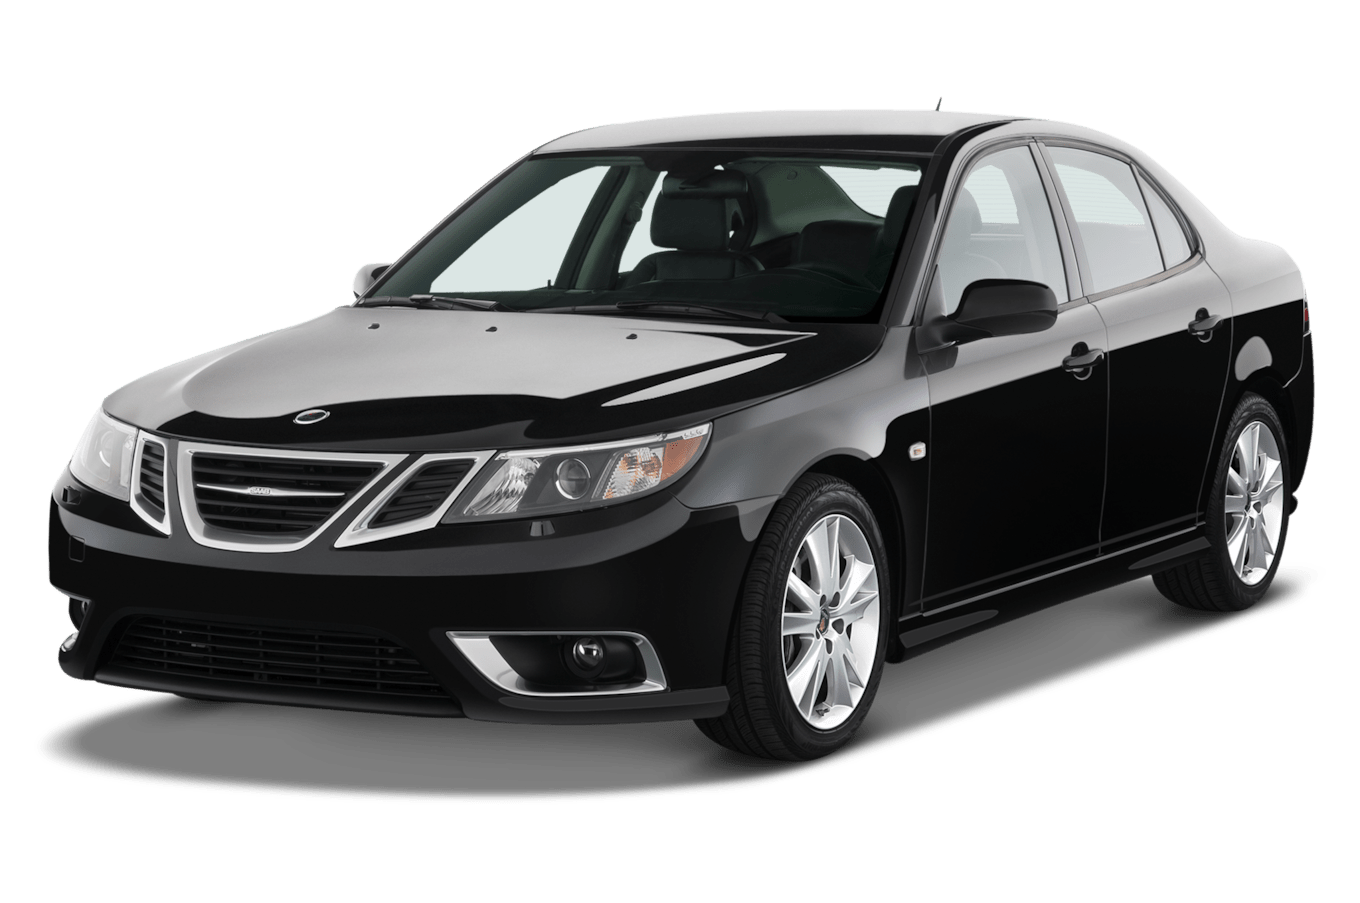 Saab 9 2x Reviews Research New Amp Used Models Motor Trend